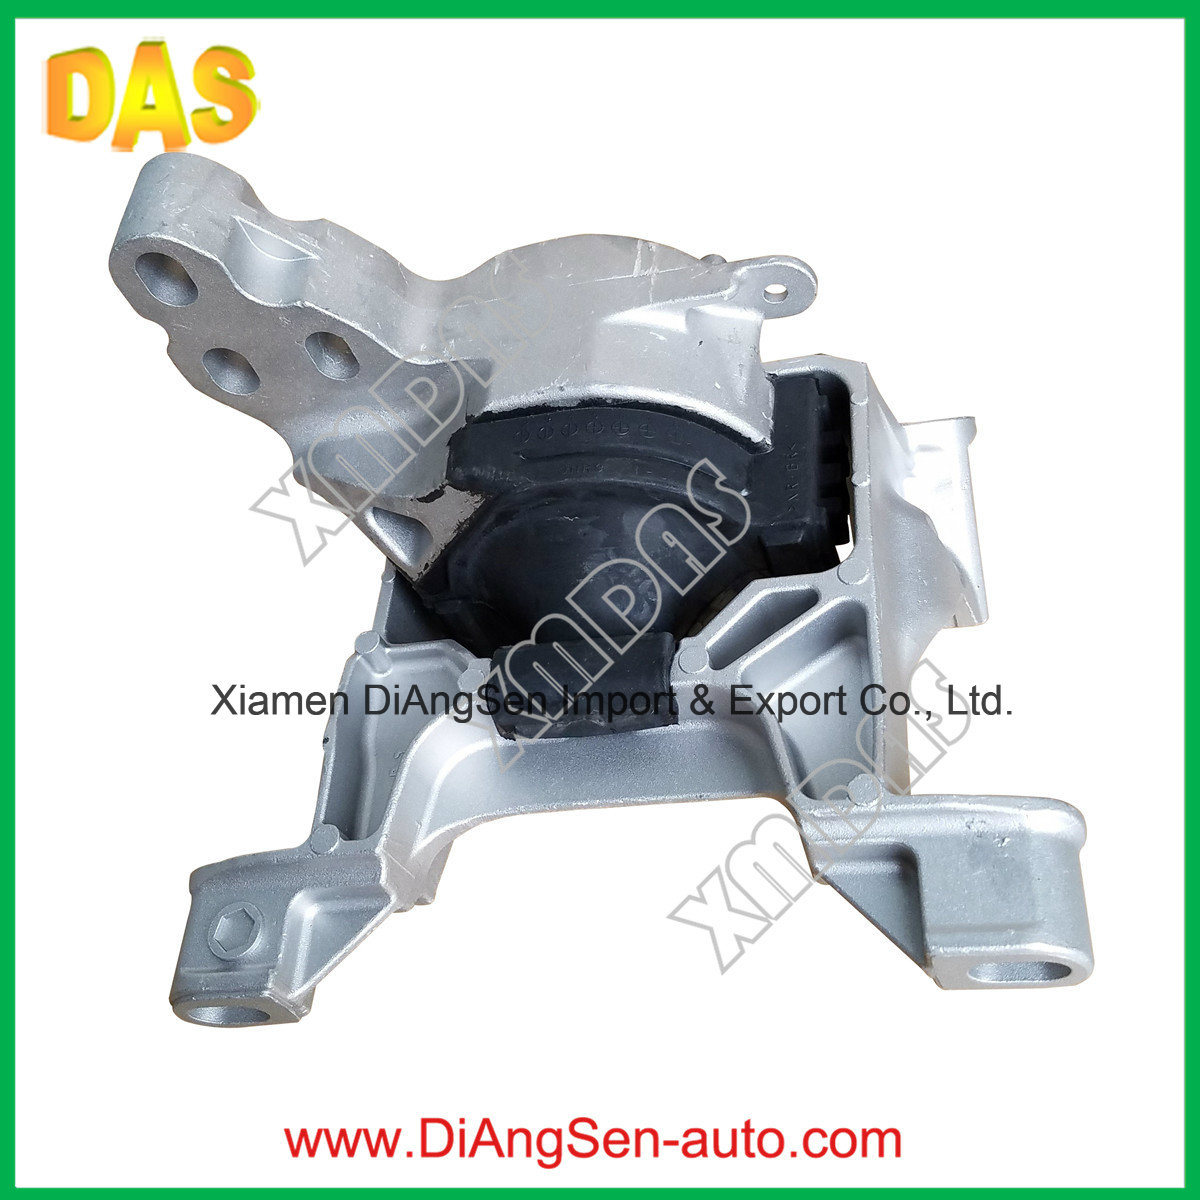 China Japanese Car Spare Parts Motor Engine Mounting for Mazda CX-5 ...